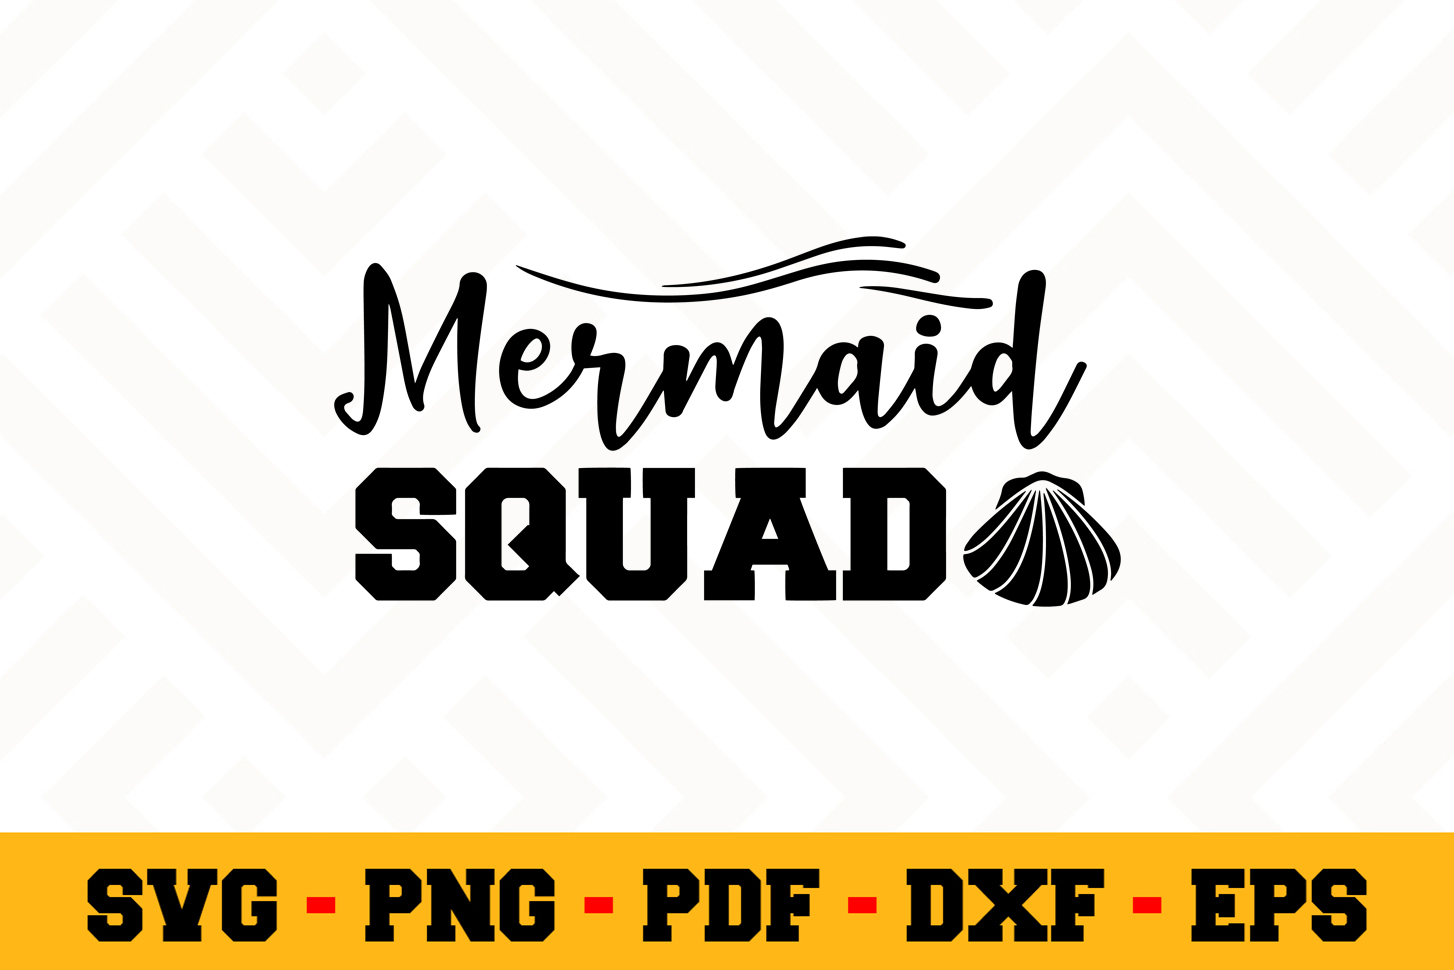 Mermaid SVG Design n526 | Mermaid SVG Cut File example image 1